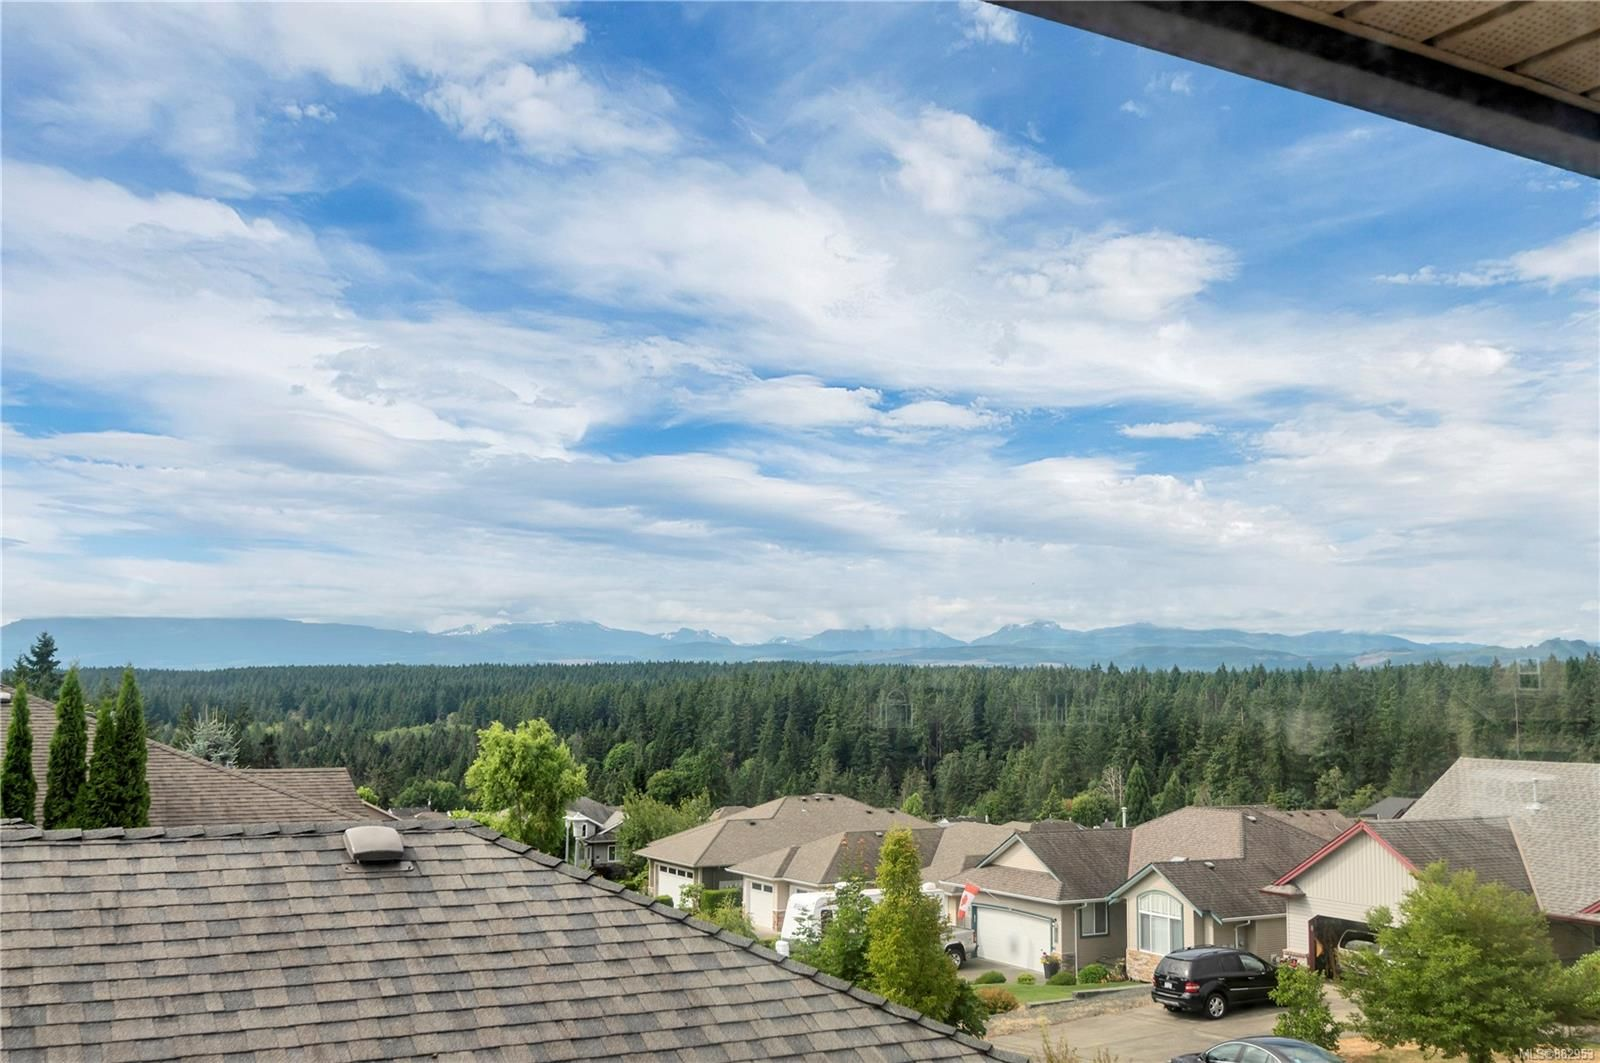 Photo 34: Photos: 732 Oribi Dr in : CR Campbell River Central House for sale (Campbell River)  : MLS®# 882953